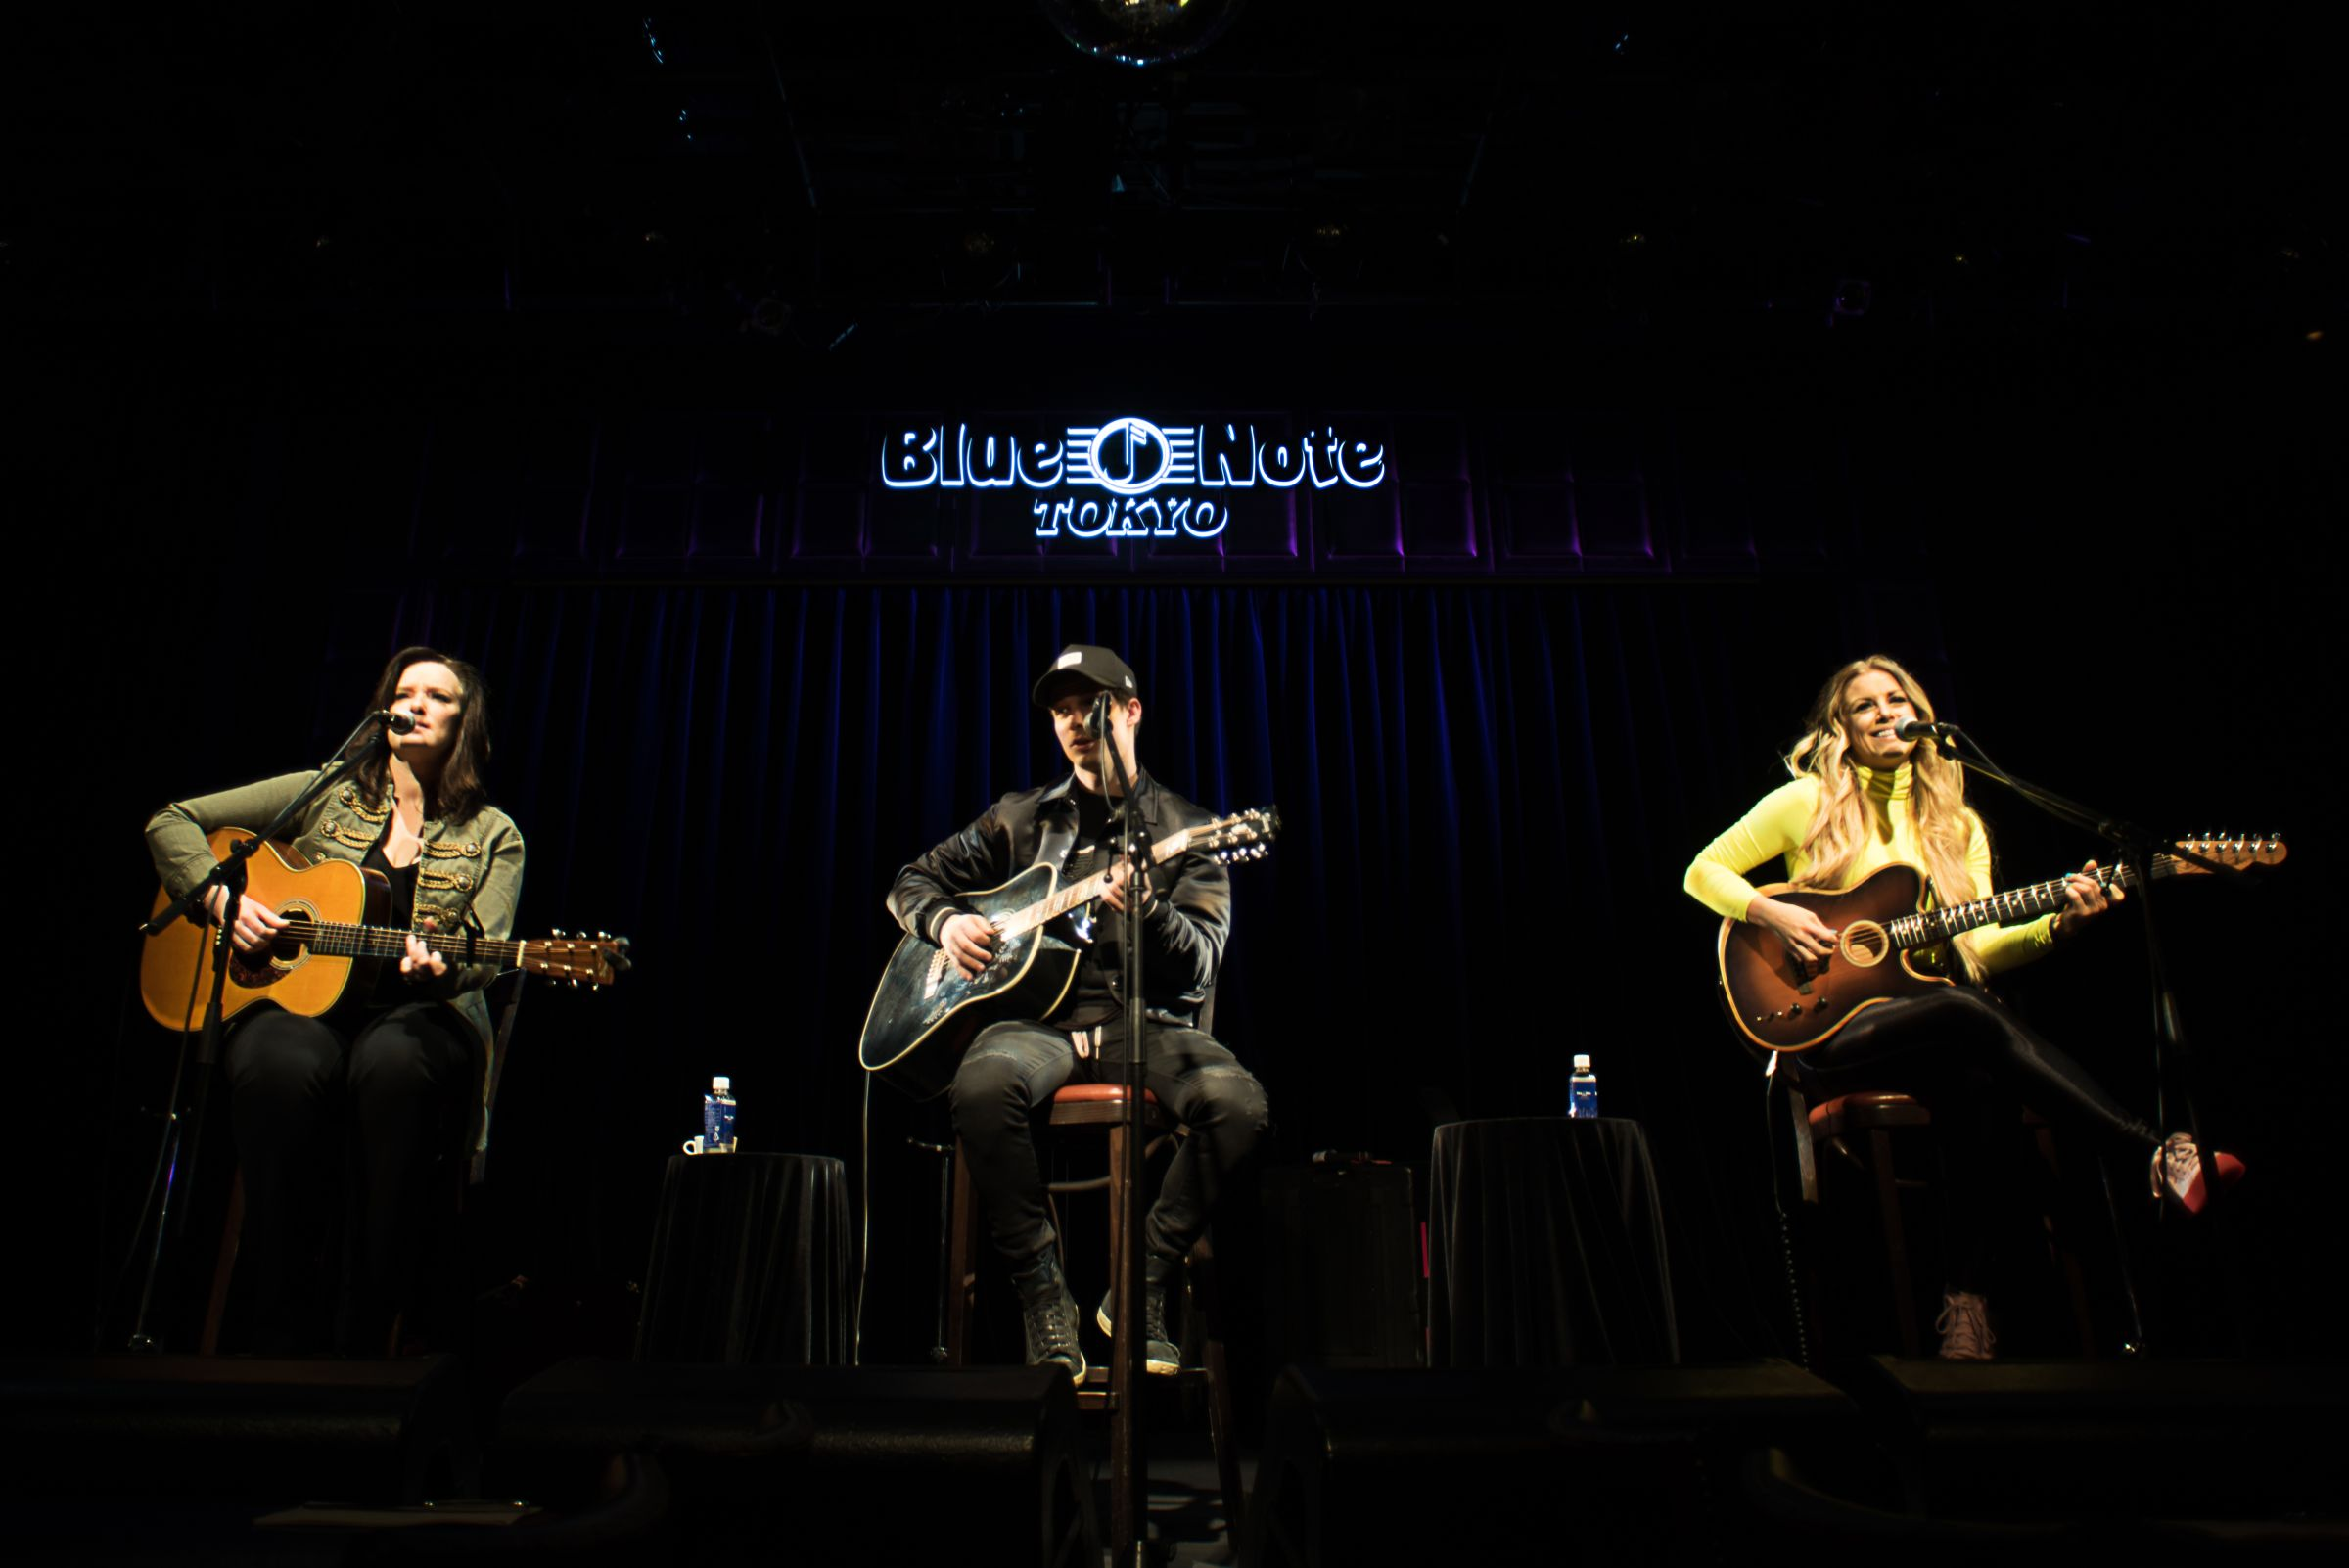 Introducing Nashville visits Blue Note in Tokyo, Japan on Saturday, March 30, 2019 featuring Brandy Clark, Devin Dawson, and Lindsay Ell.